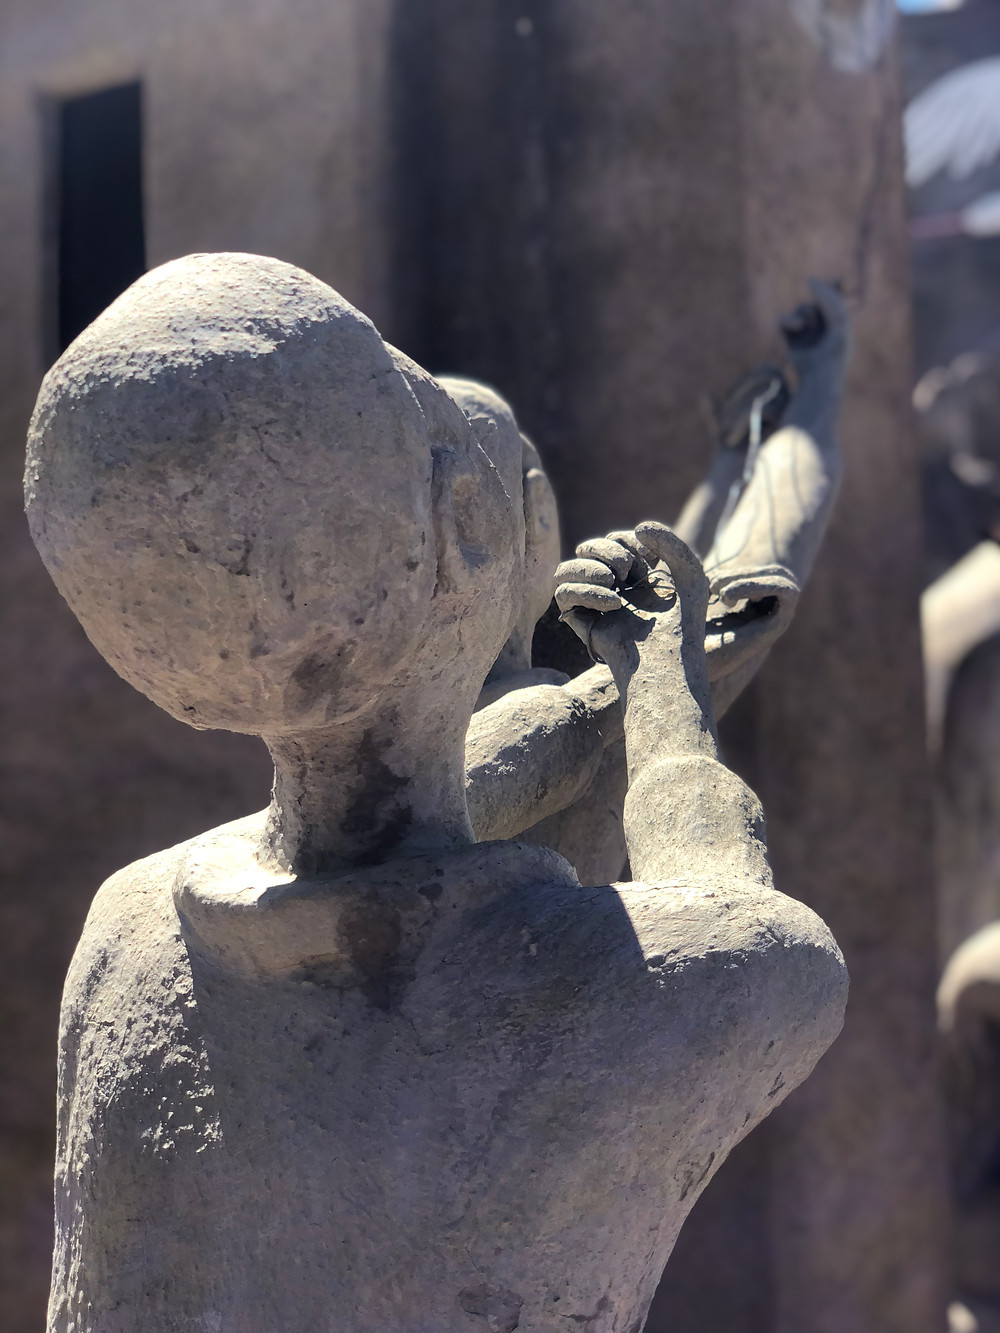 Cement sculpture, hands of time, growing old, live forever